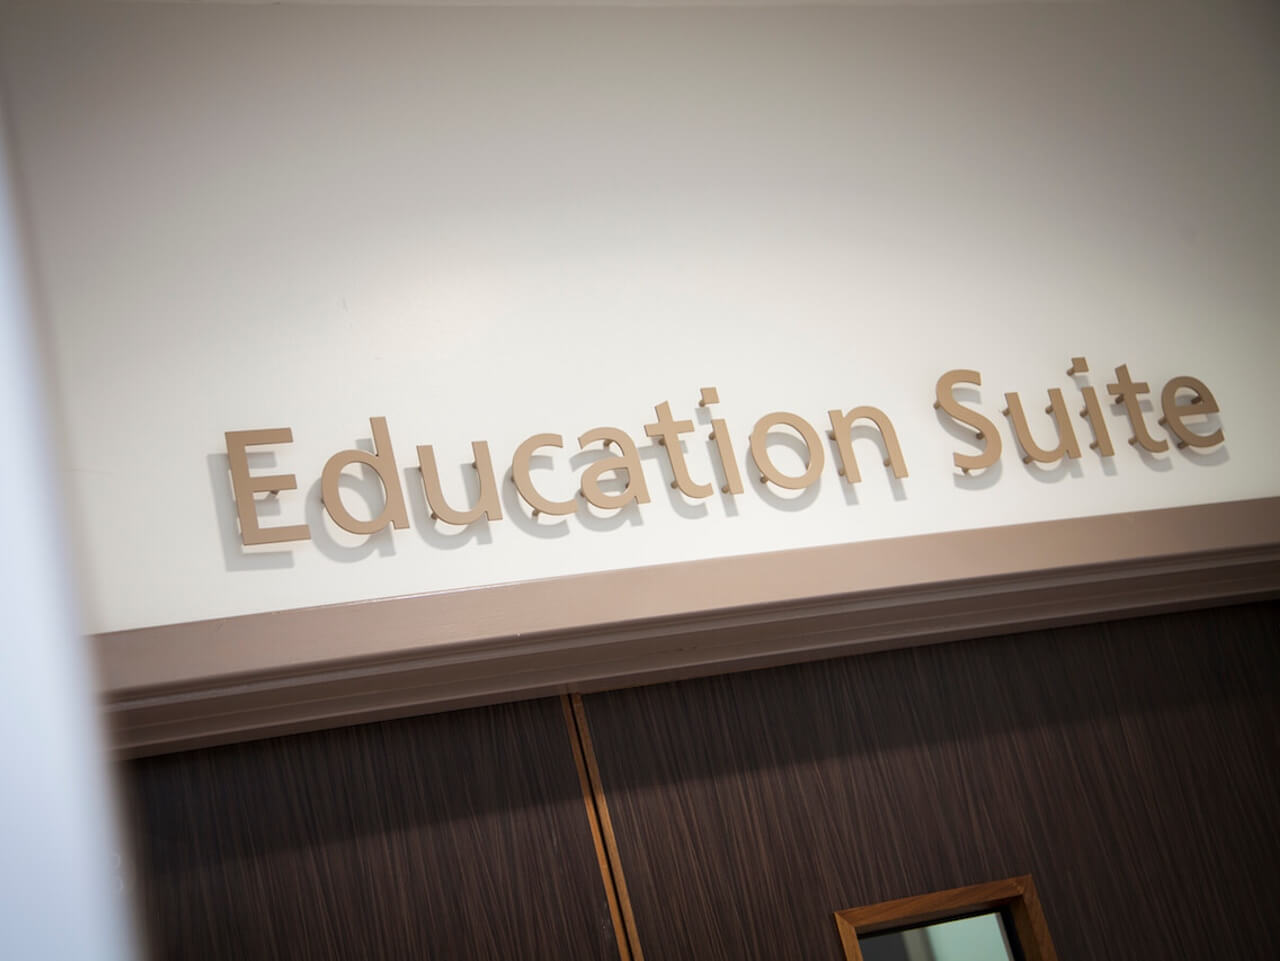 3D lettering for the education suite